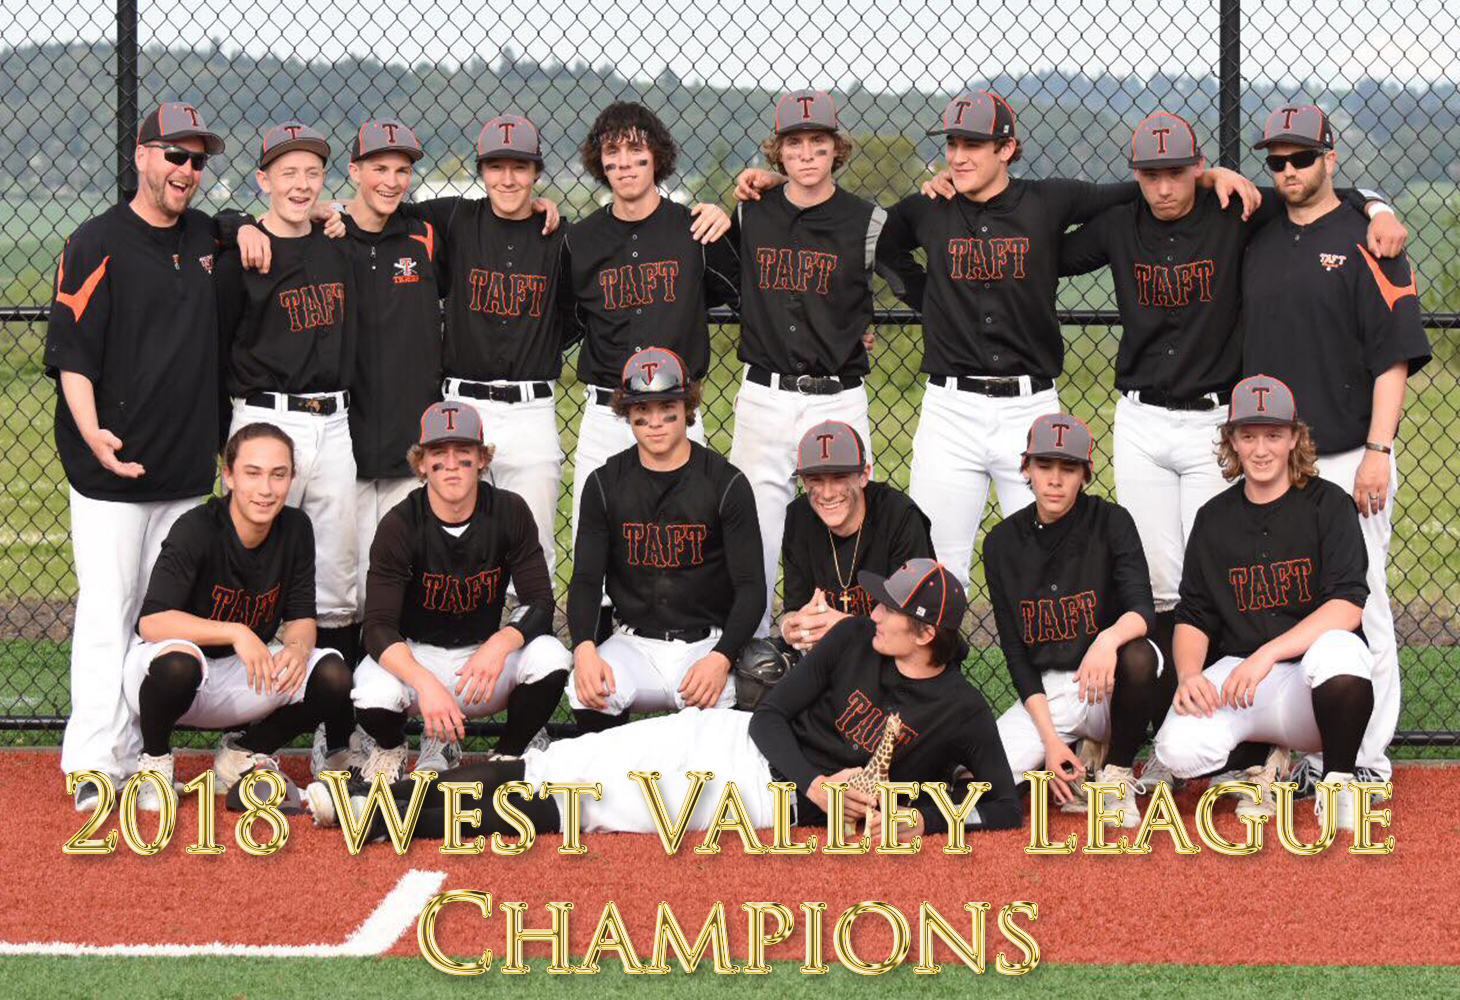 2018 West Valley League Champions